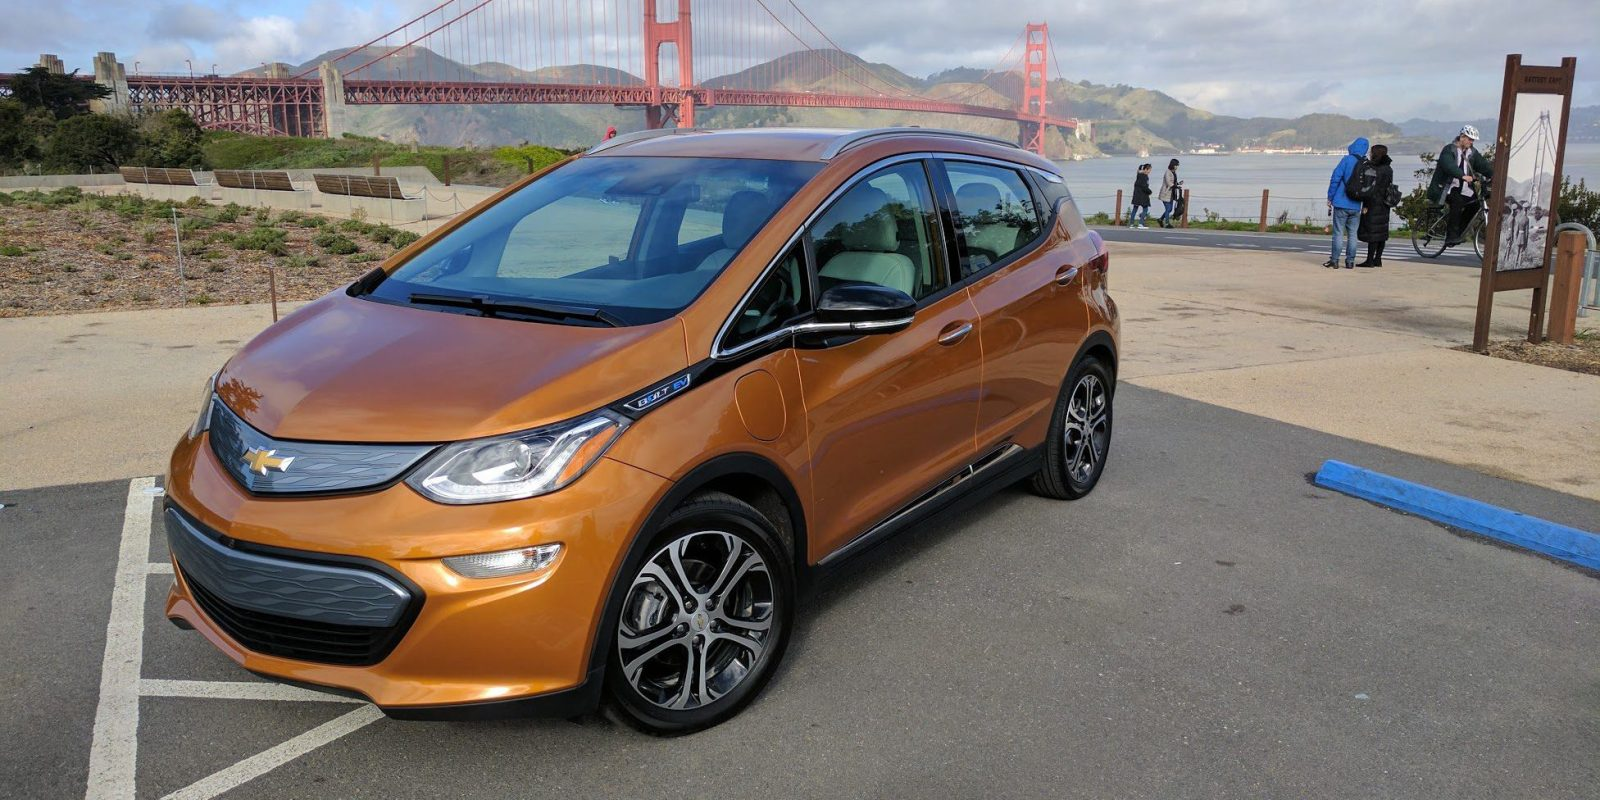 medium resolution of gm delivers record 2 000 chevy bolt evs bringing total to over 10 000 all electric cars